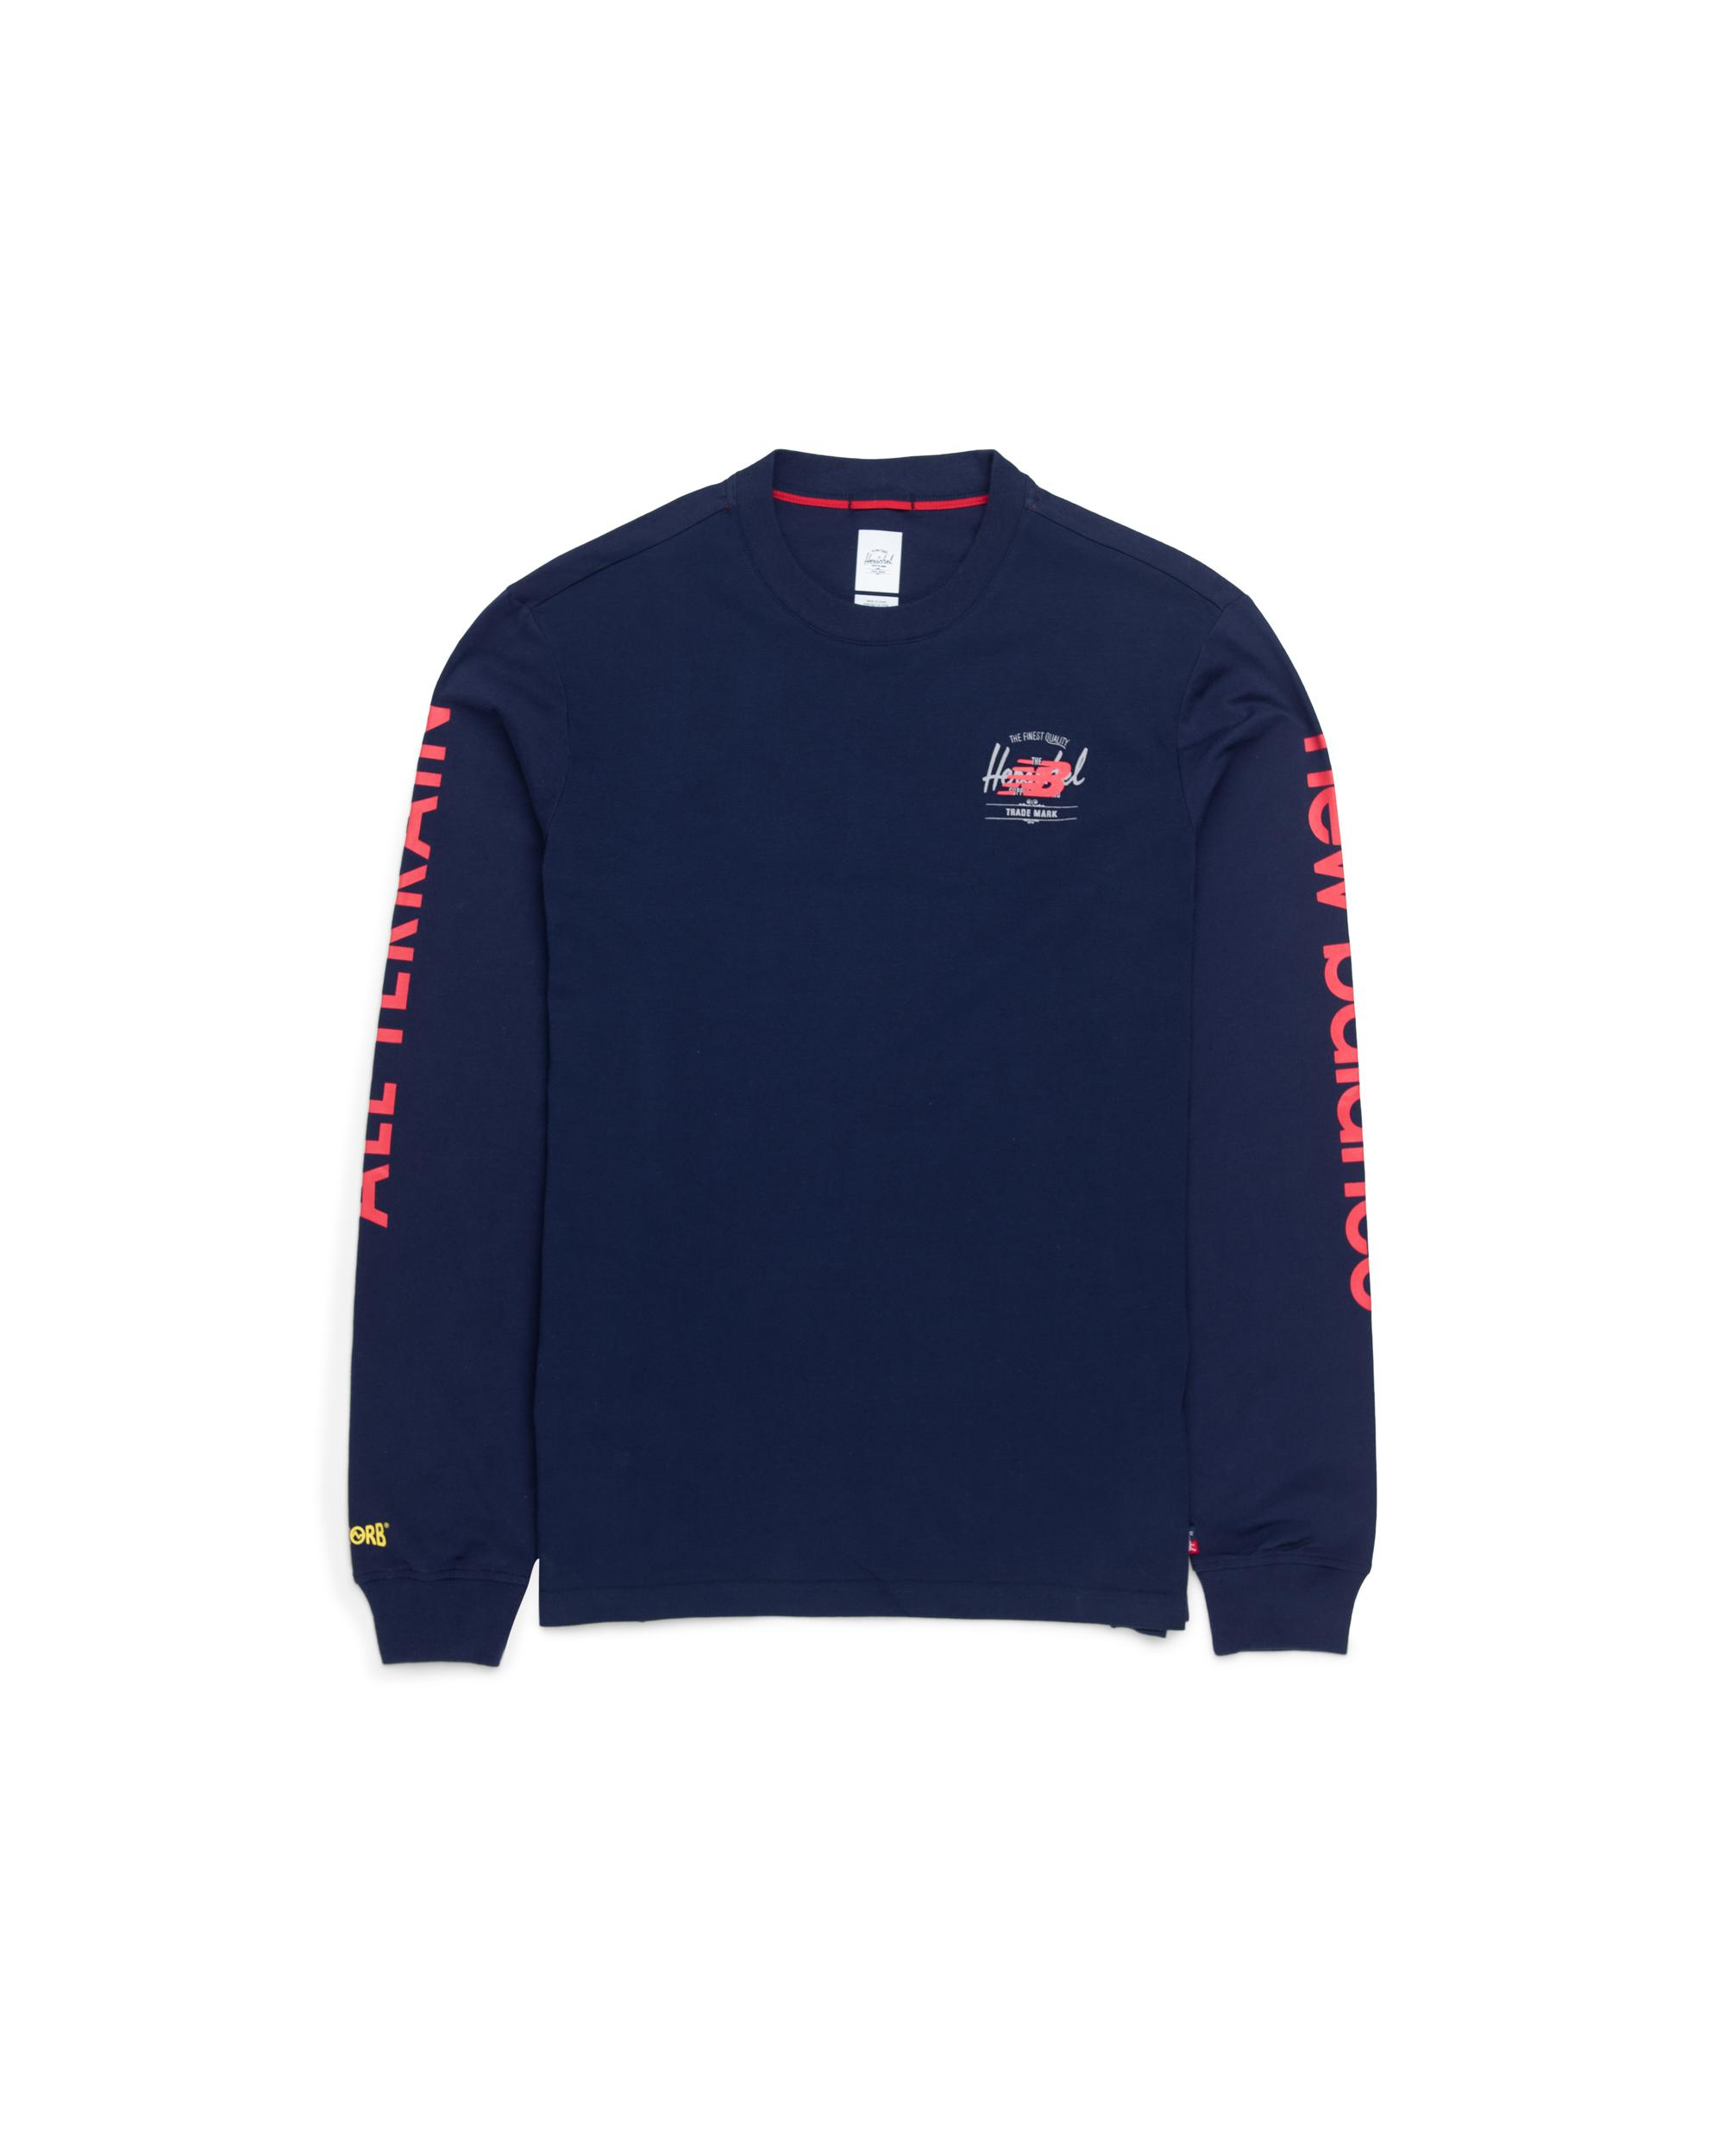 New Balance Long Sleeve Tee | Mens by Herschel Supply Co.